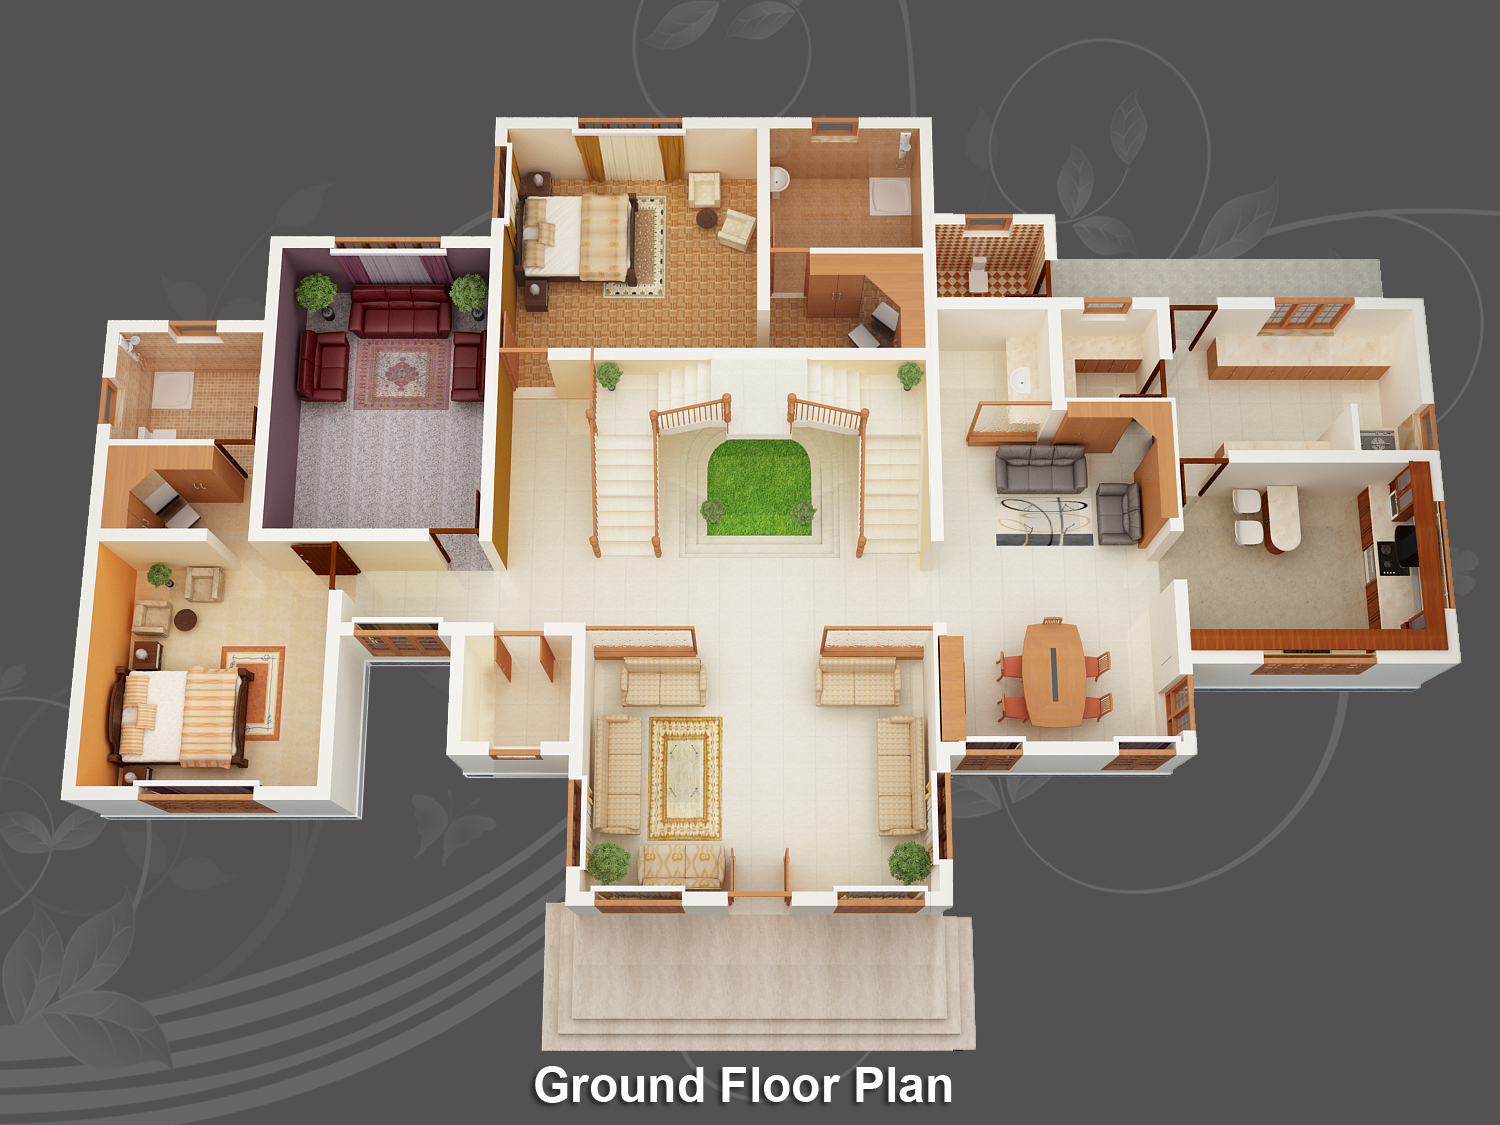 Evens construction pvt ltd 3d house plan 20 05 2011 Home design 3d download